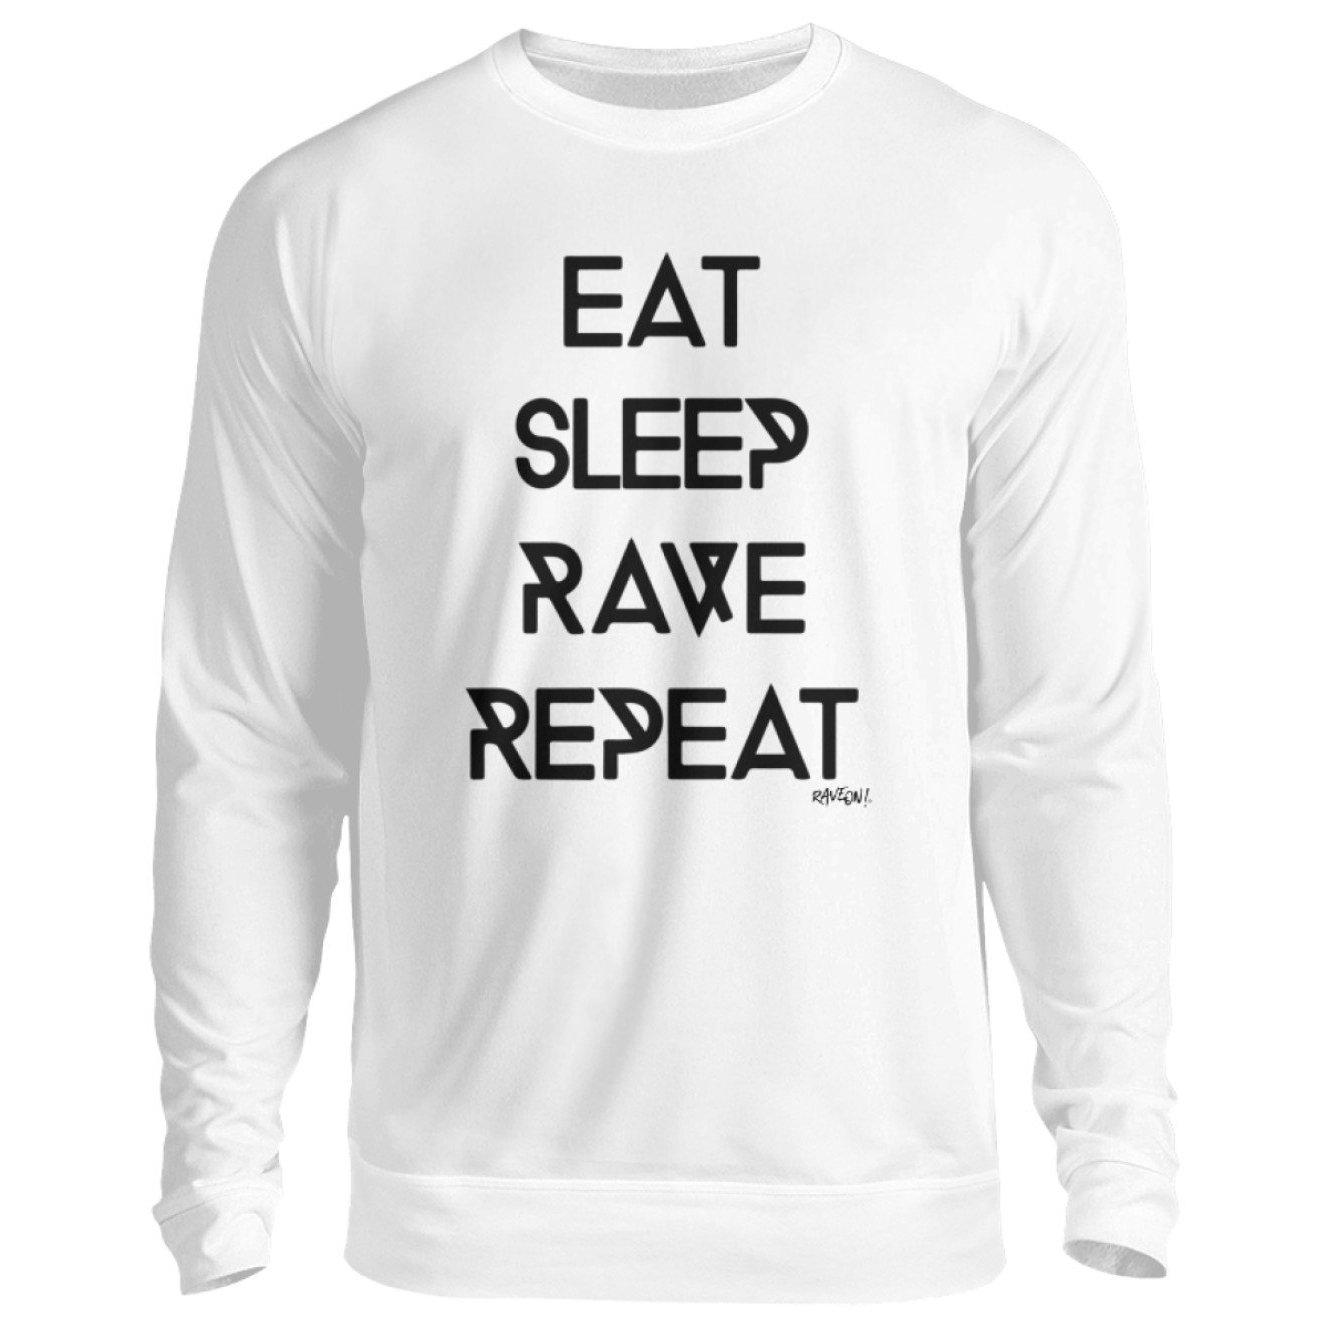 Eat Sleep Rave Repeat - Rave On!® - Unisex Pullover-Unisex Sweatshirt-Arctic White-S-Rave-On! I www.rave-on.shop I Deine Rave & Techno Szene Shop I bopullover, boyfriend pullover, boypullover, brand, Design - Eat Sleep Rave Repeat Rave On!®, eat sleep rave repeat, on!®, pullover boy, pullover boyfriend, rave, Rave on, Rave On!®, rave repeat, Techno shirt, ® - Sexy Festival Streetwear , Clubwear & Raver Style